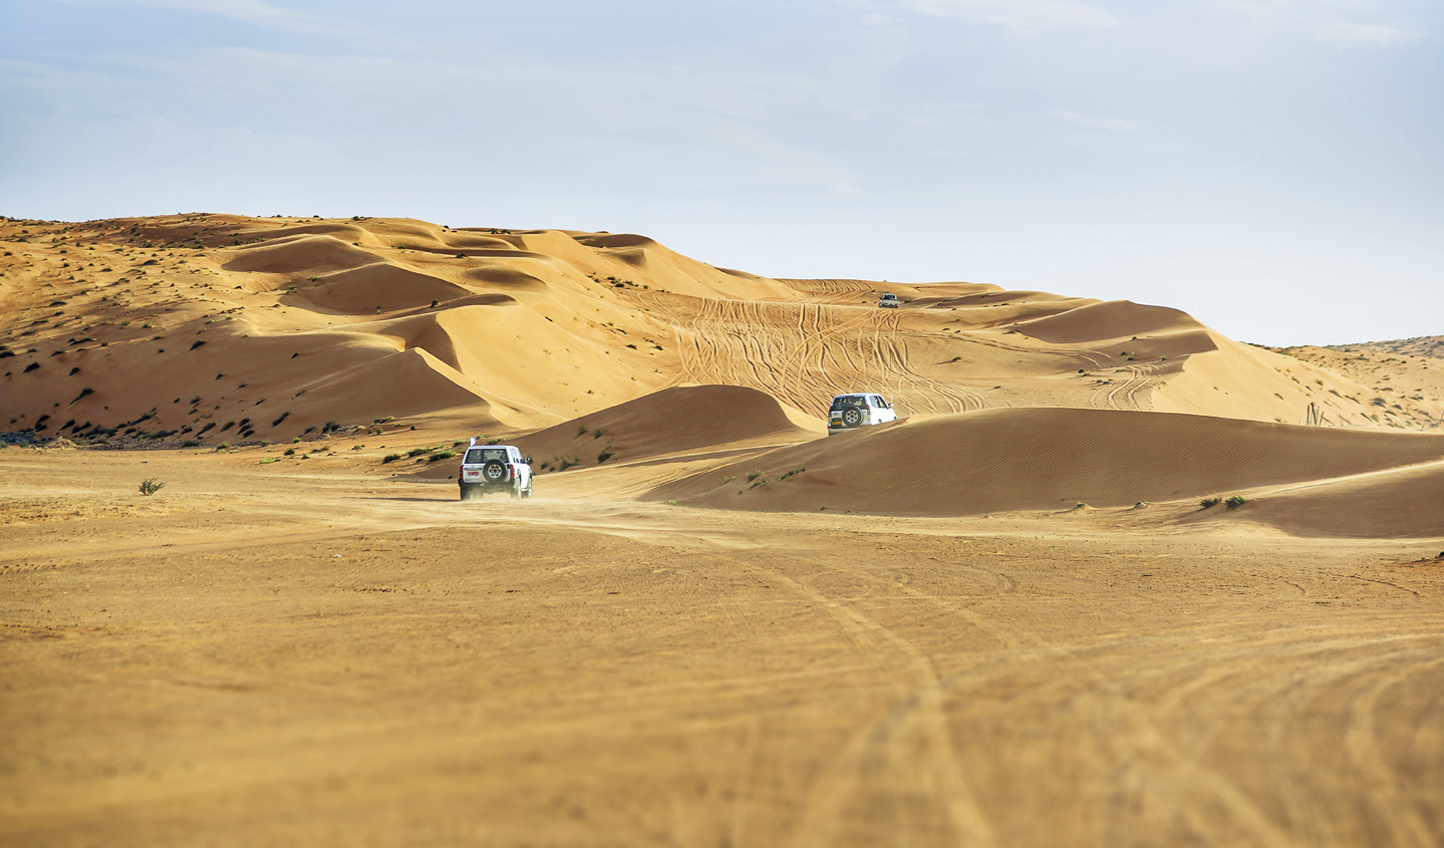 Off-road adventure through the dunes of Wahiba Sands